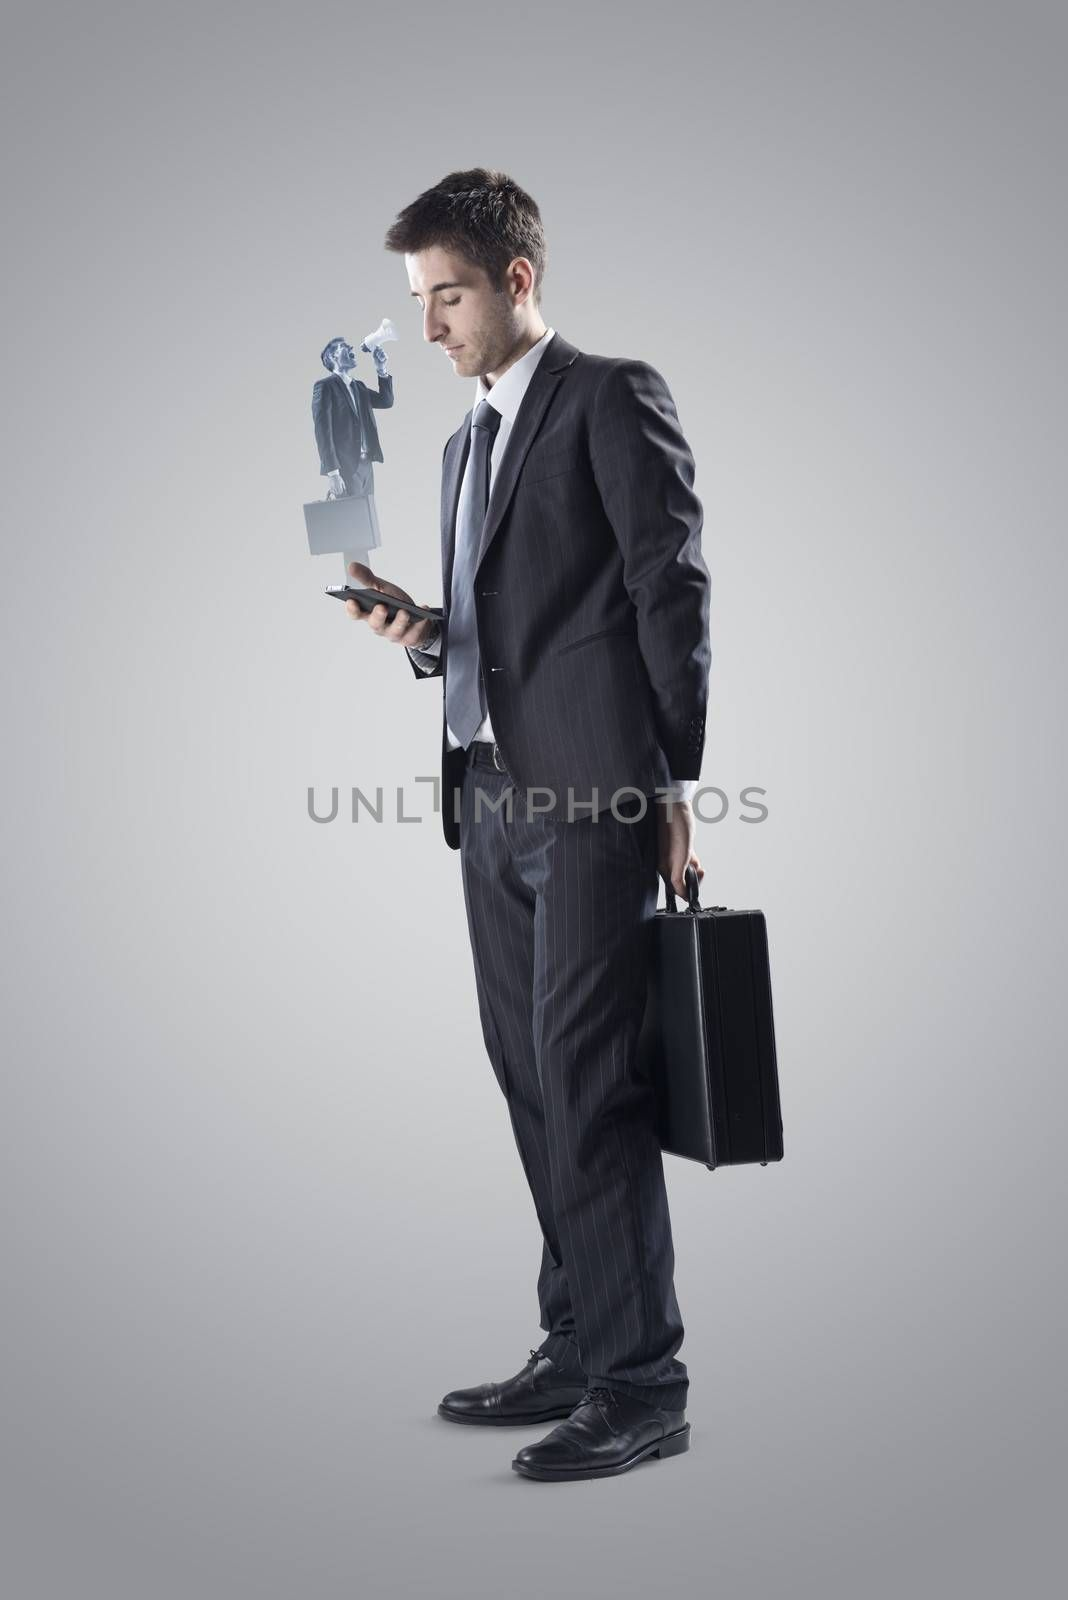 Business and mobile communication concept.